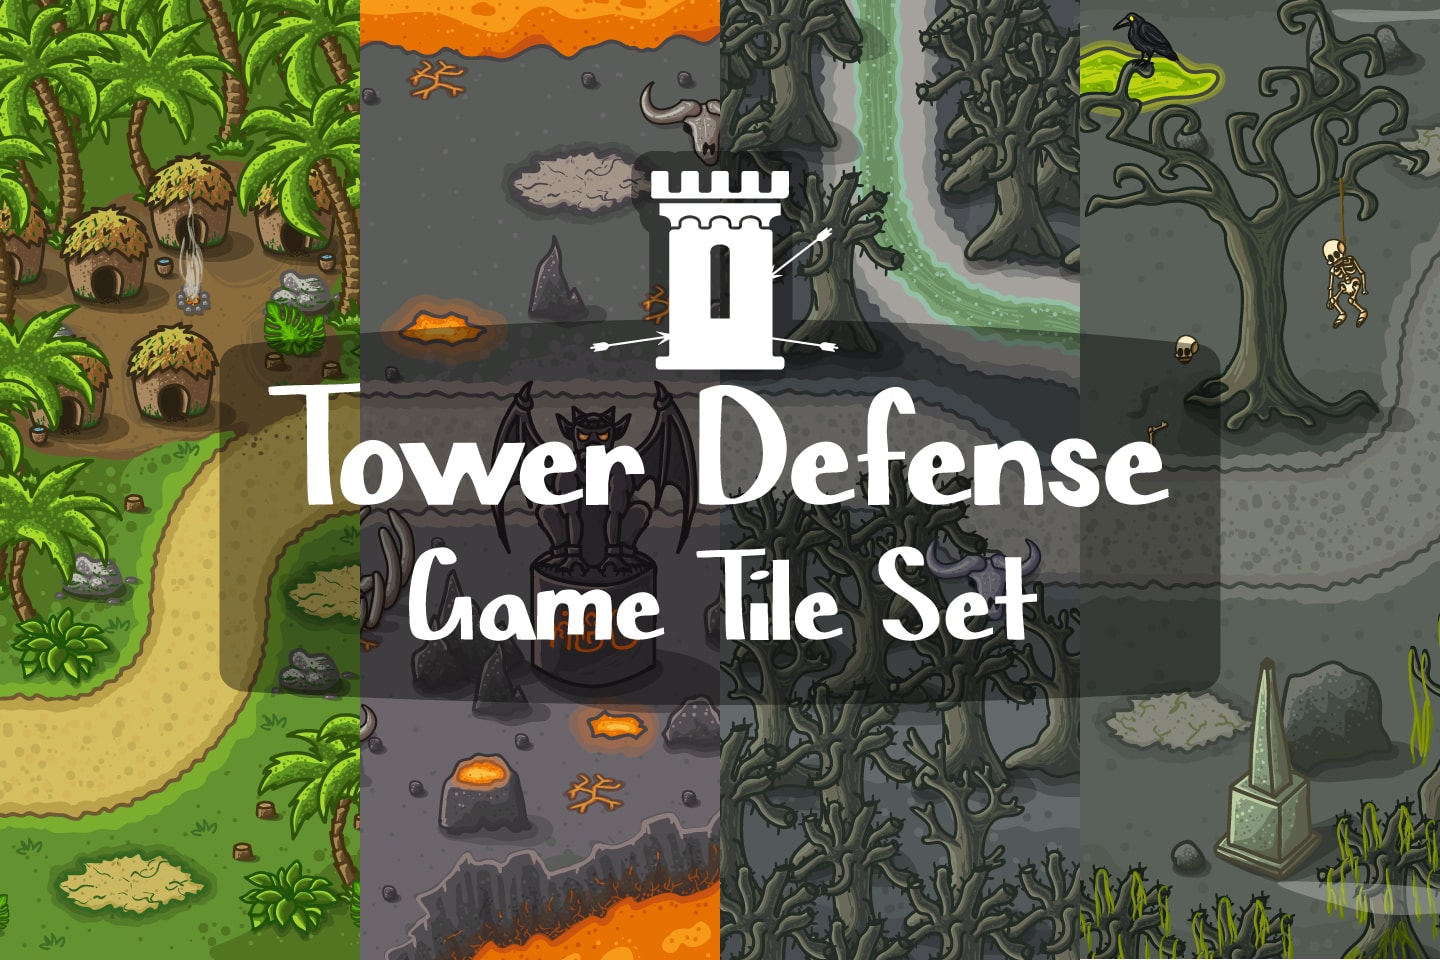 Tower Defense Game Tile Set Pack 2